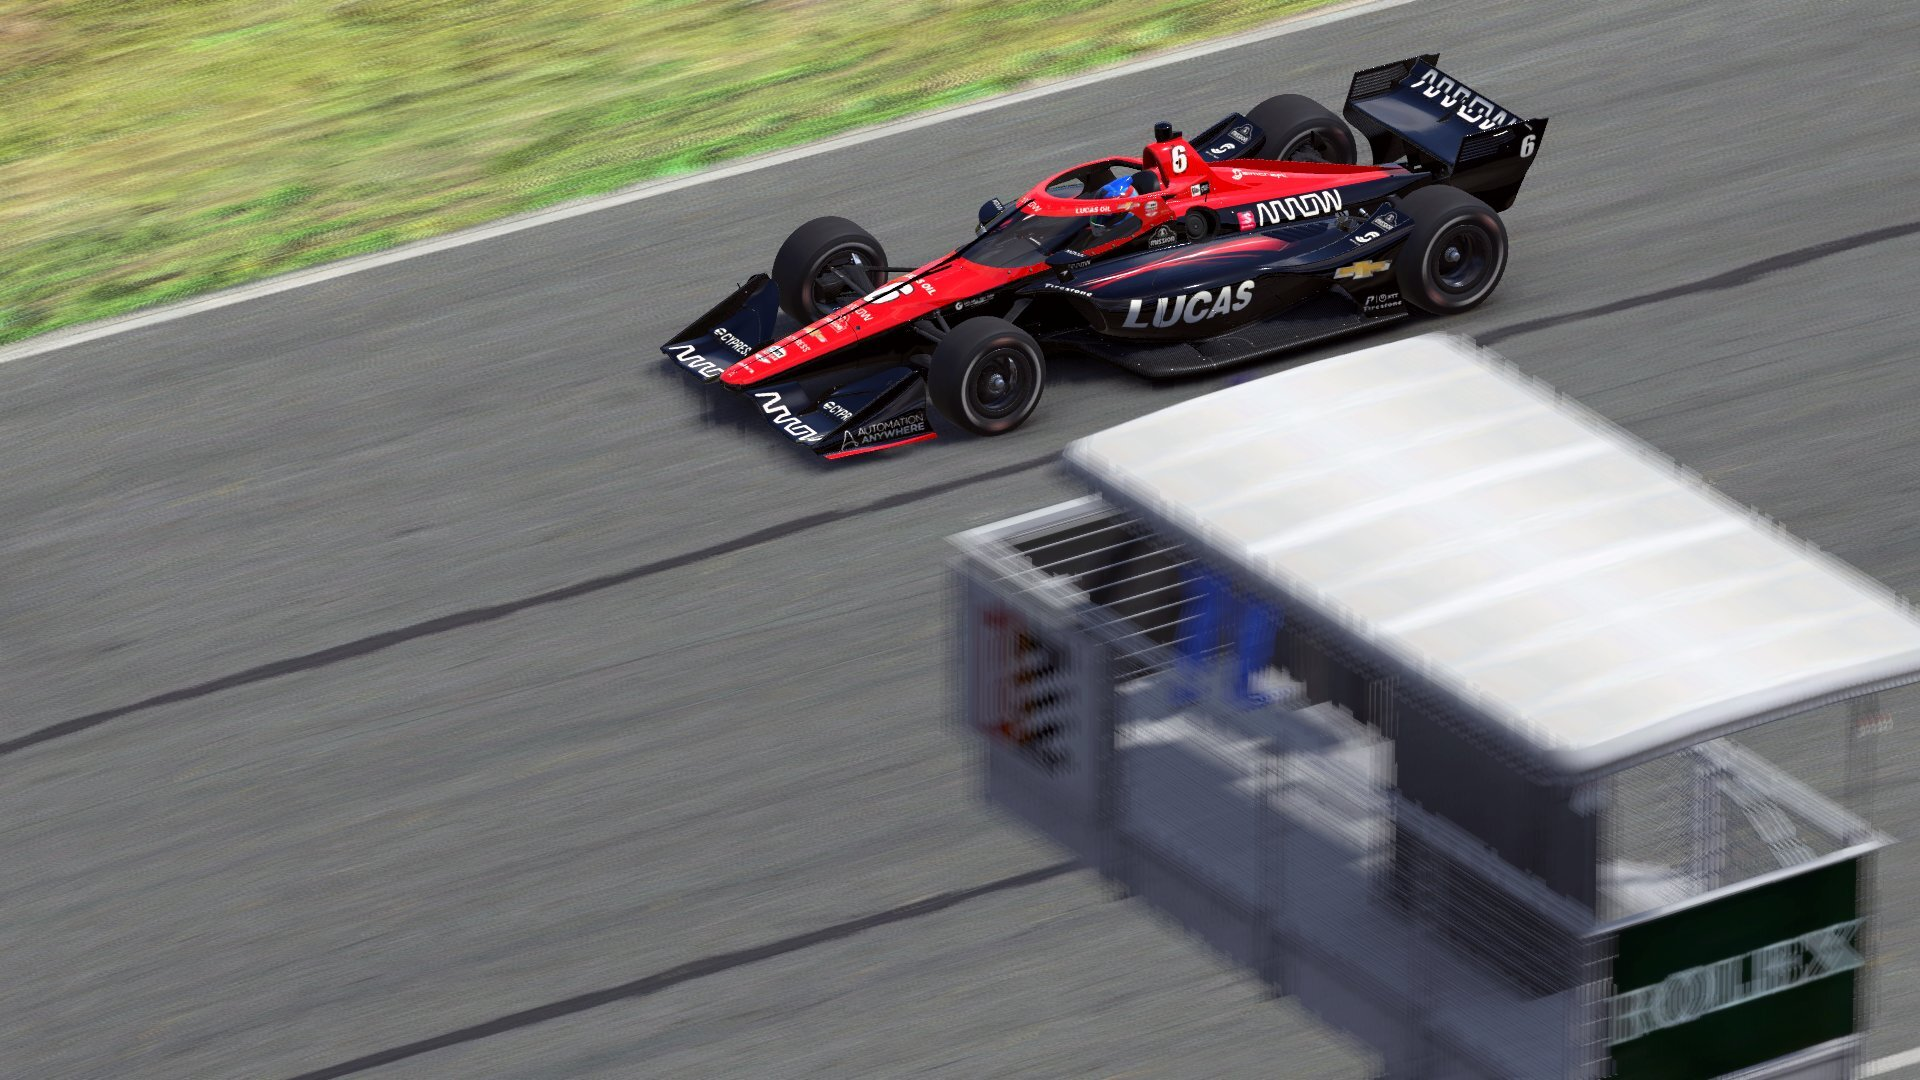 Robert Wickens Iracing Indycar Pic 1